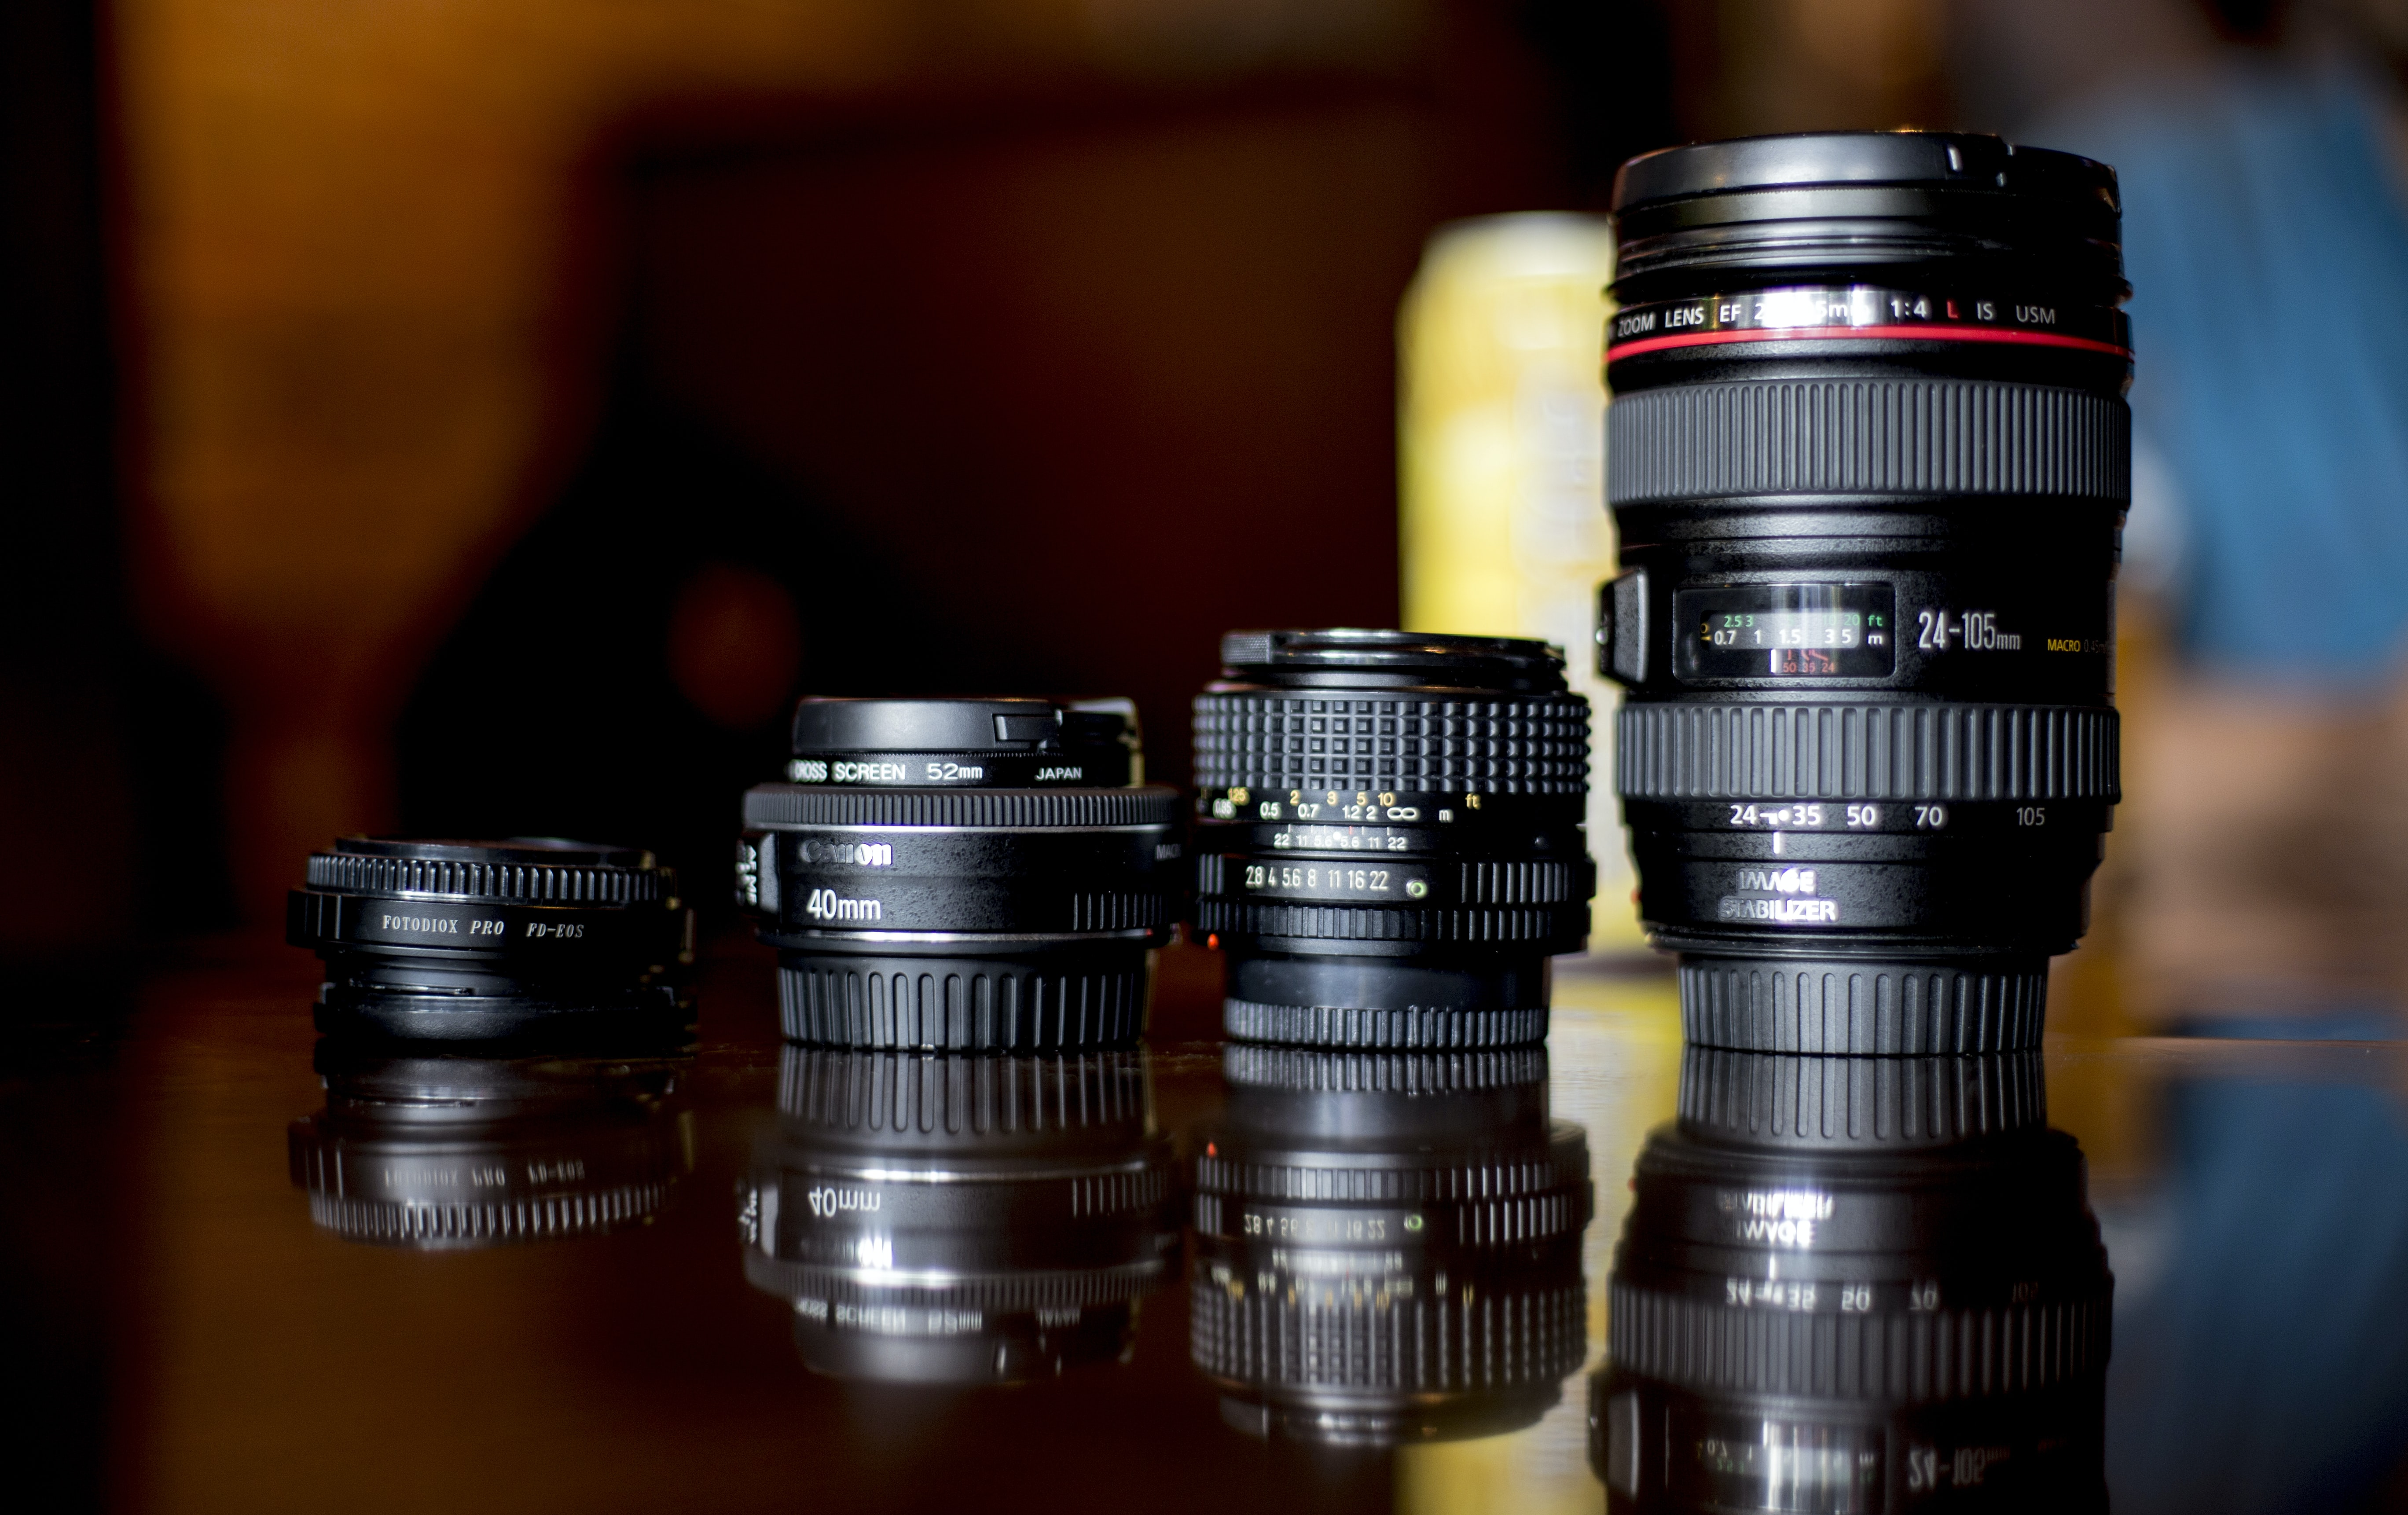 A set of various professional DSLR camera lenses lined up in a row